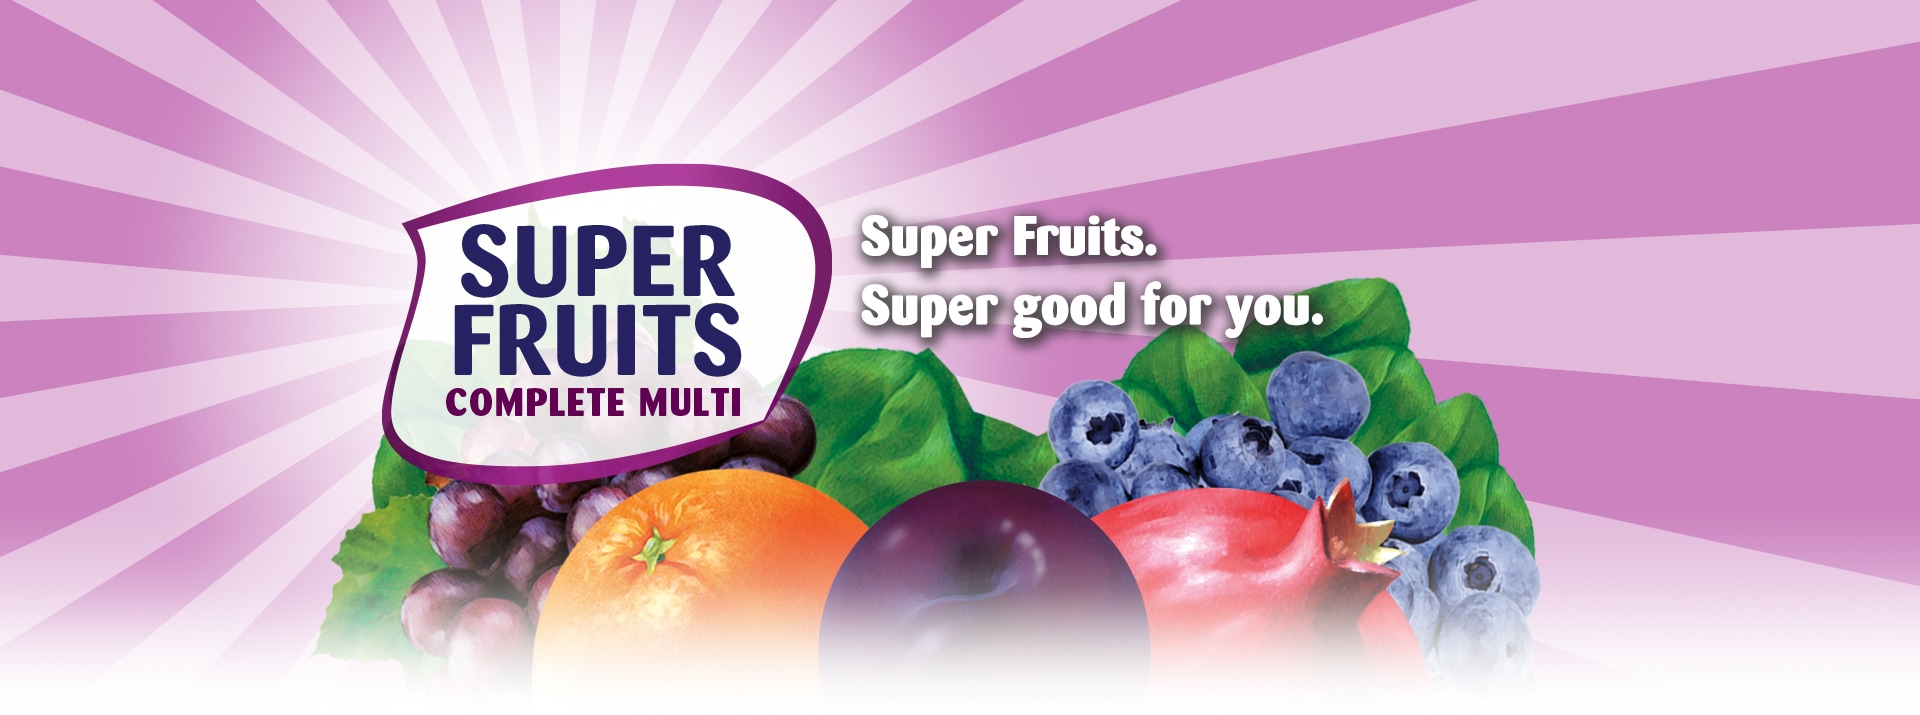 Super fruits complete multivitamin. Super fruits. Super good for you.